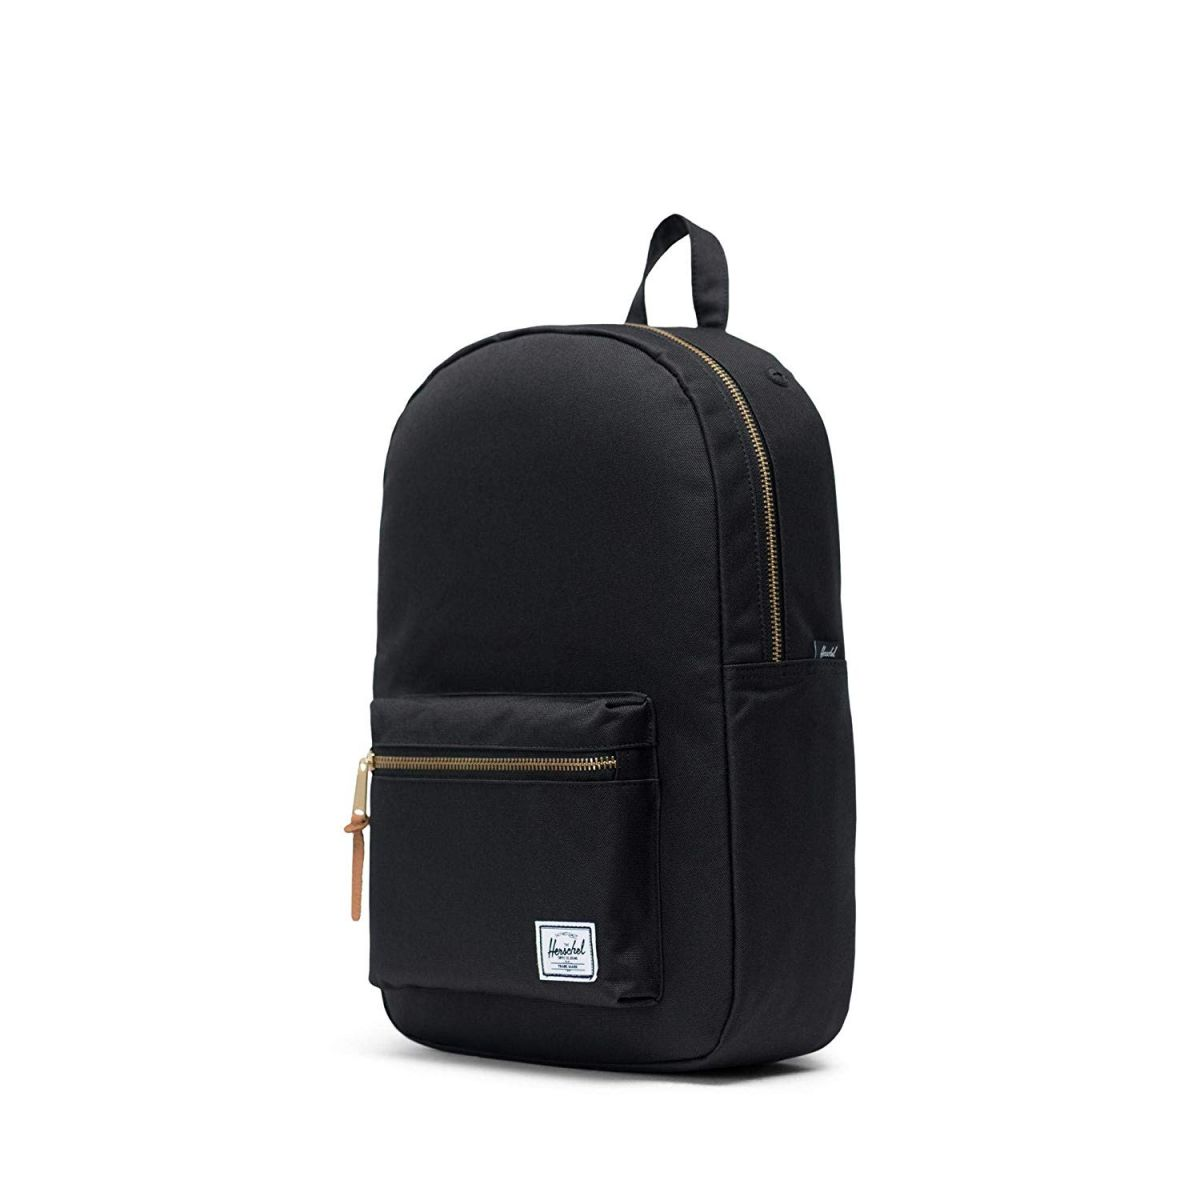 A black Herschel Supply Co. backpack